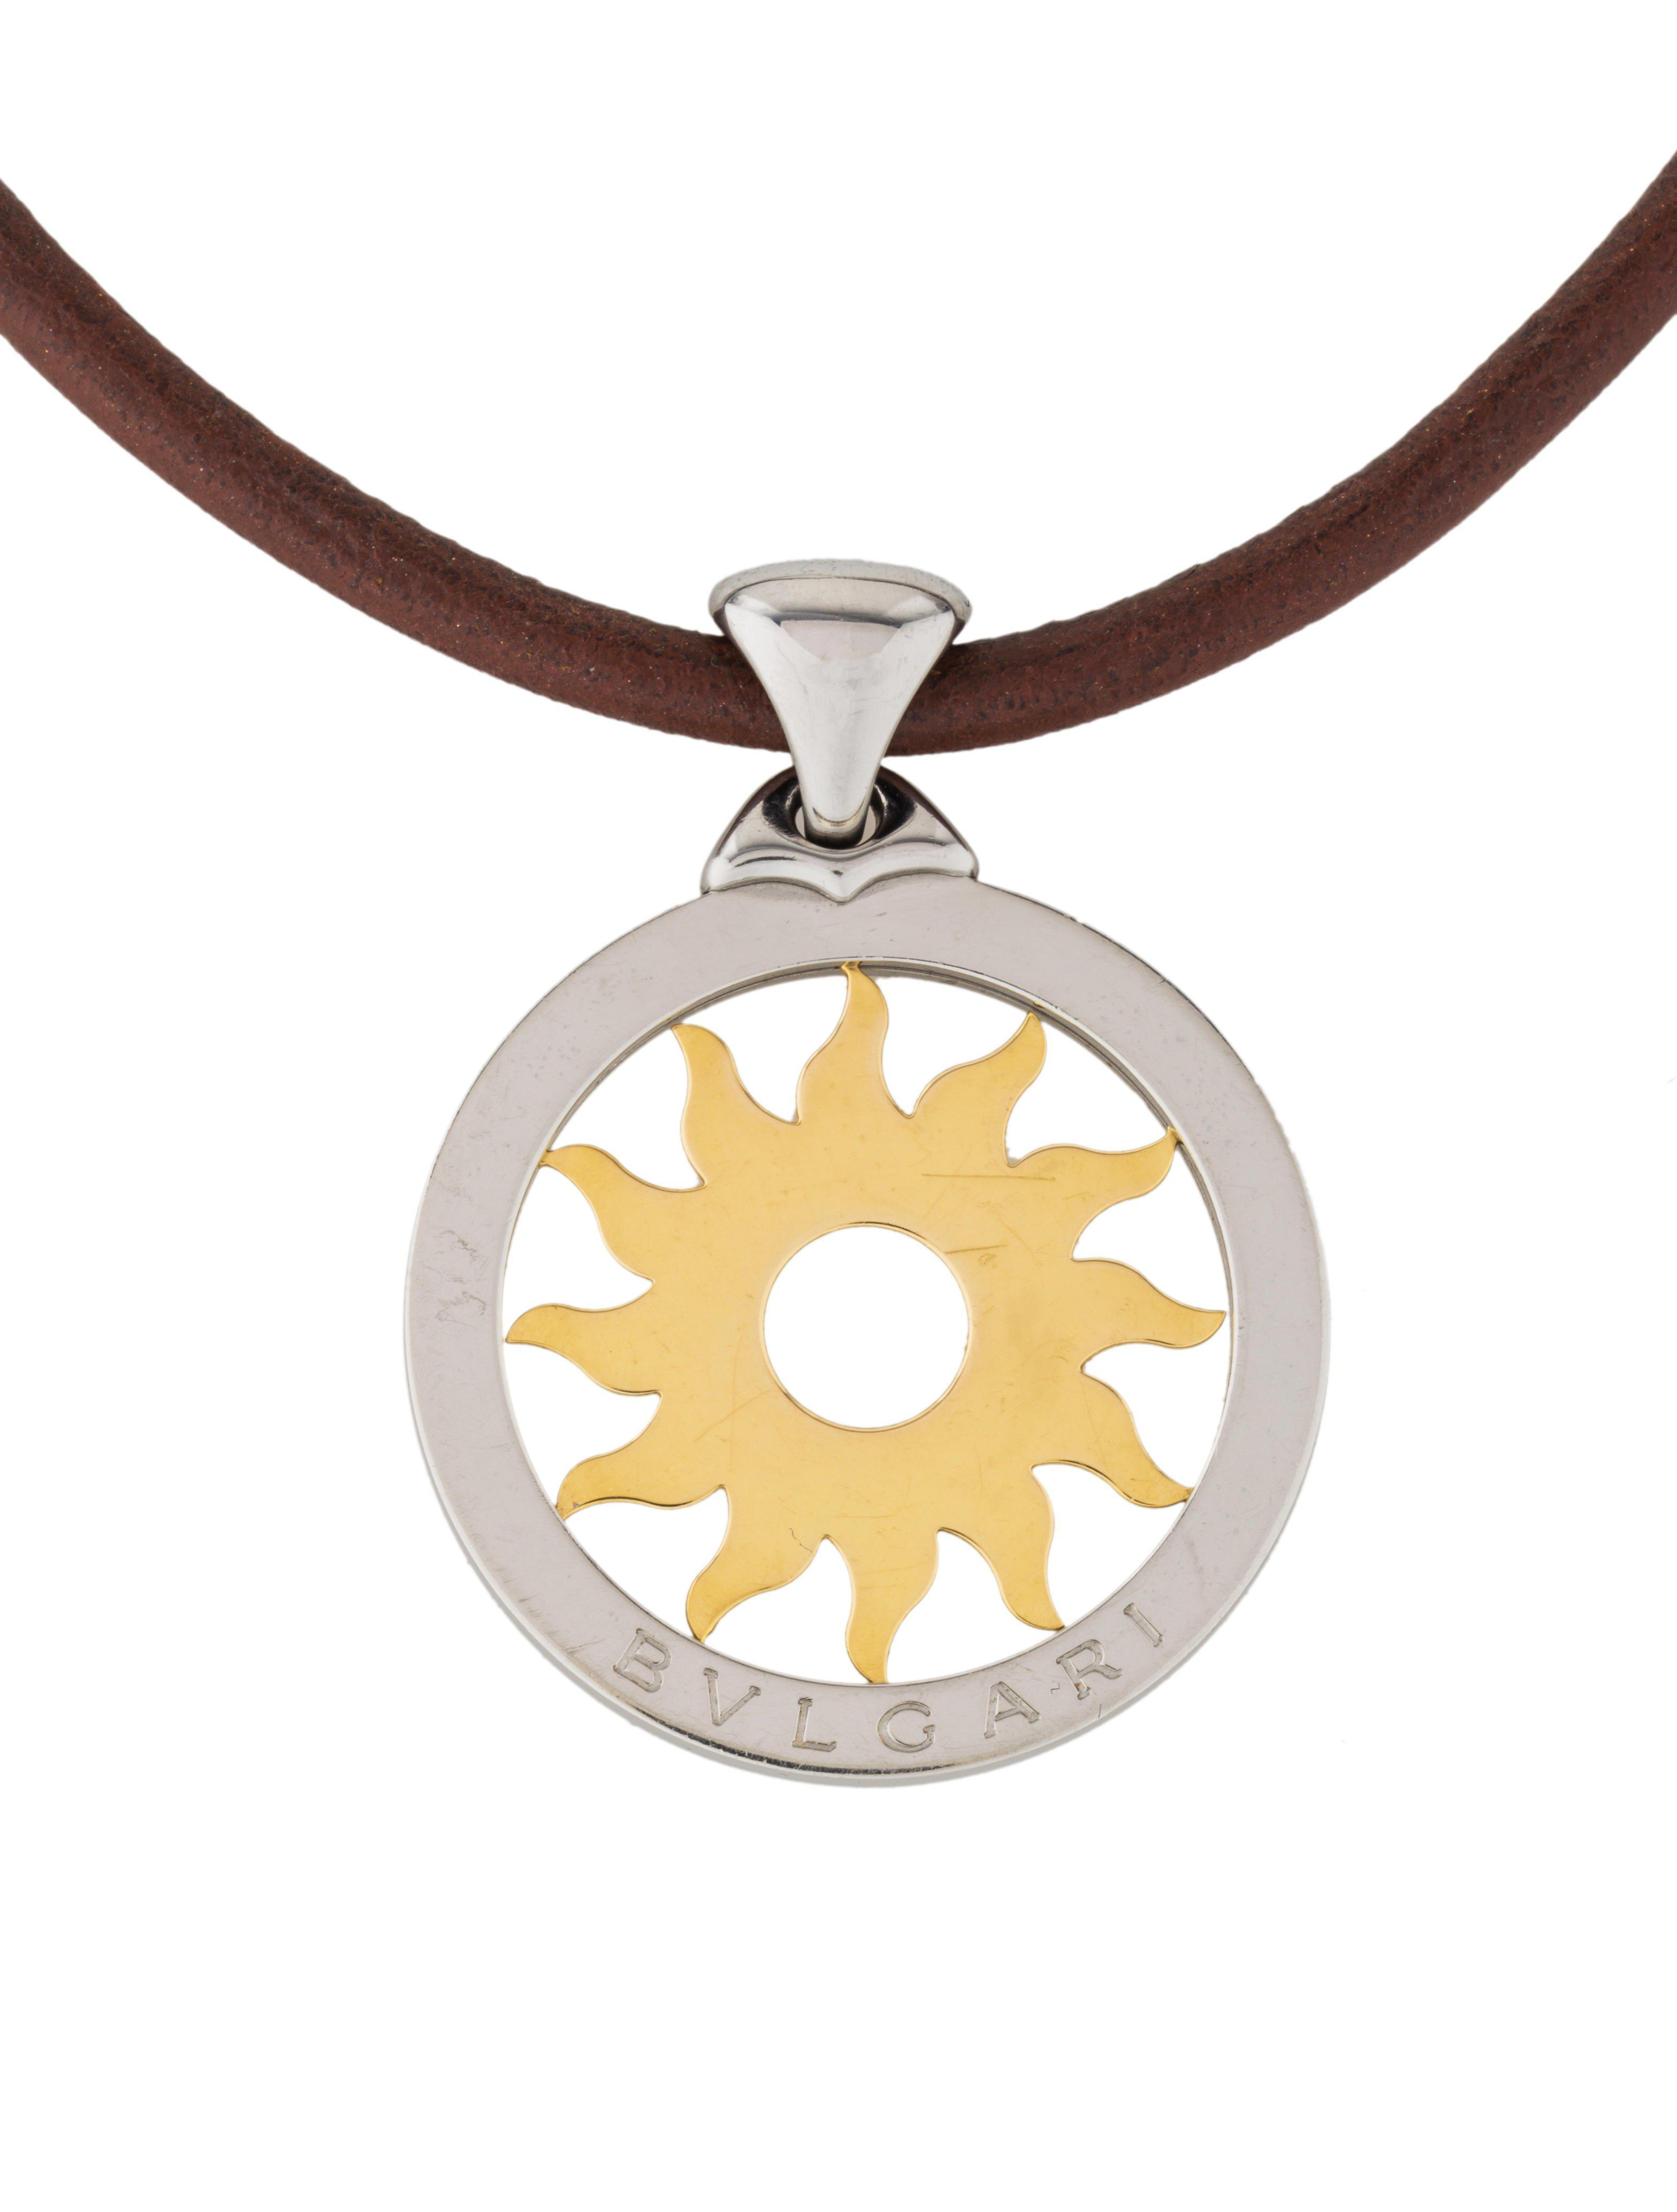 stilnest necklace moon designer by sun silver leather us gold choker plated in faith audrina medal en patridge